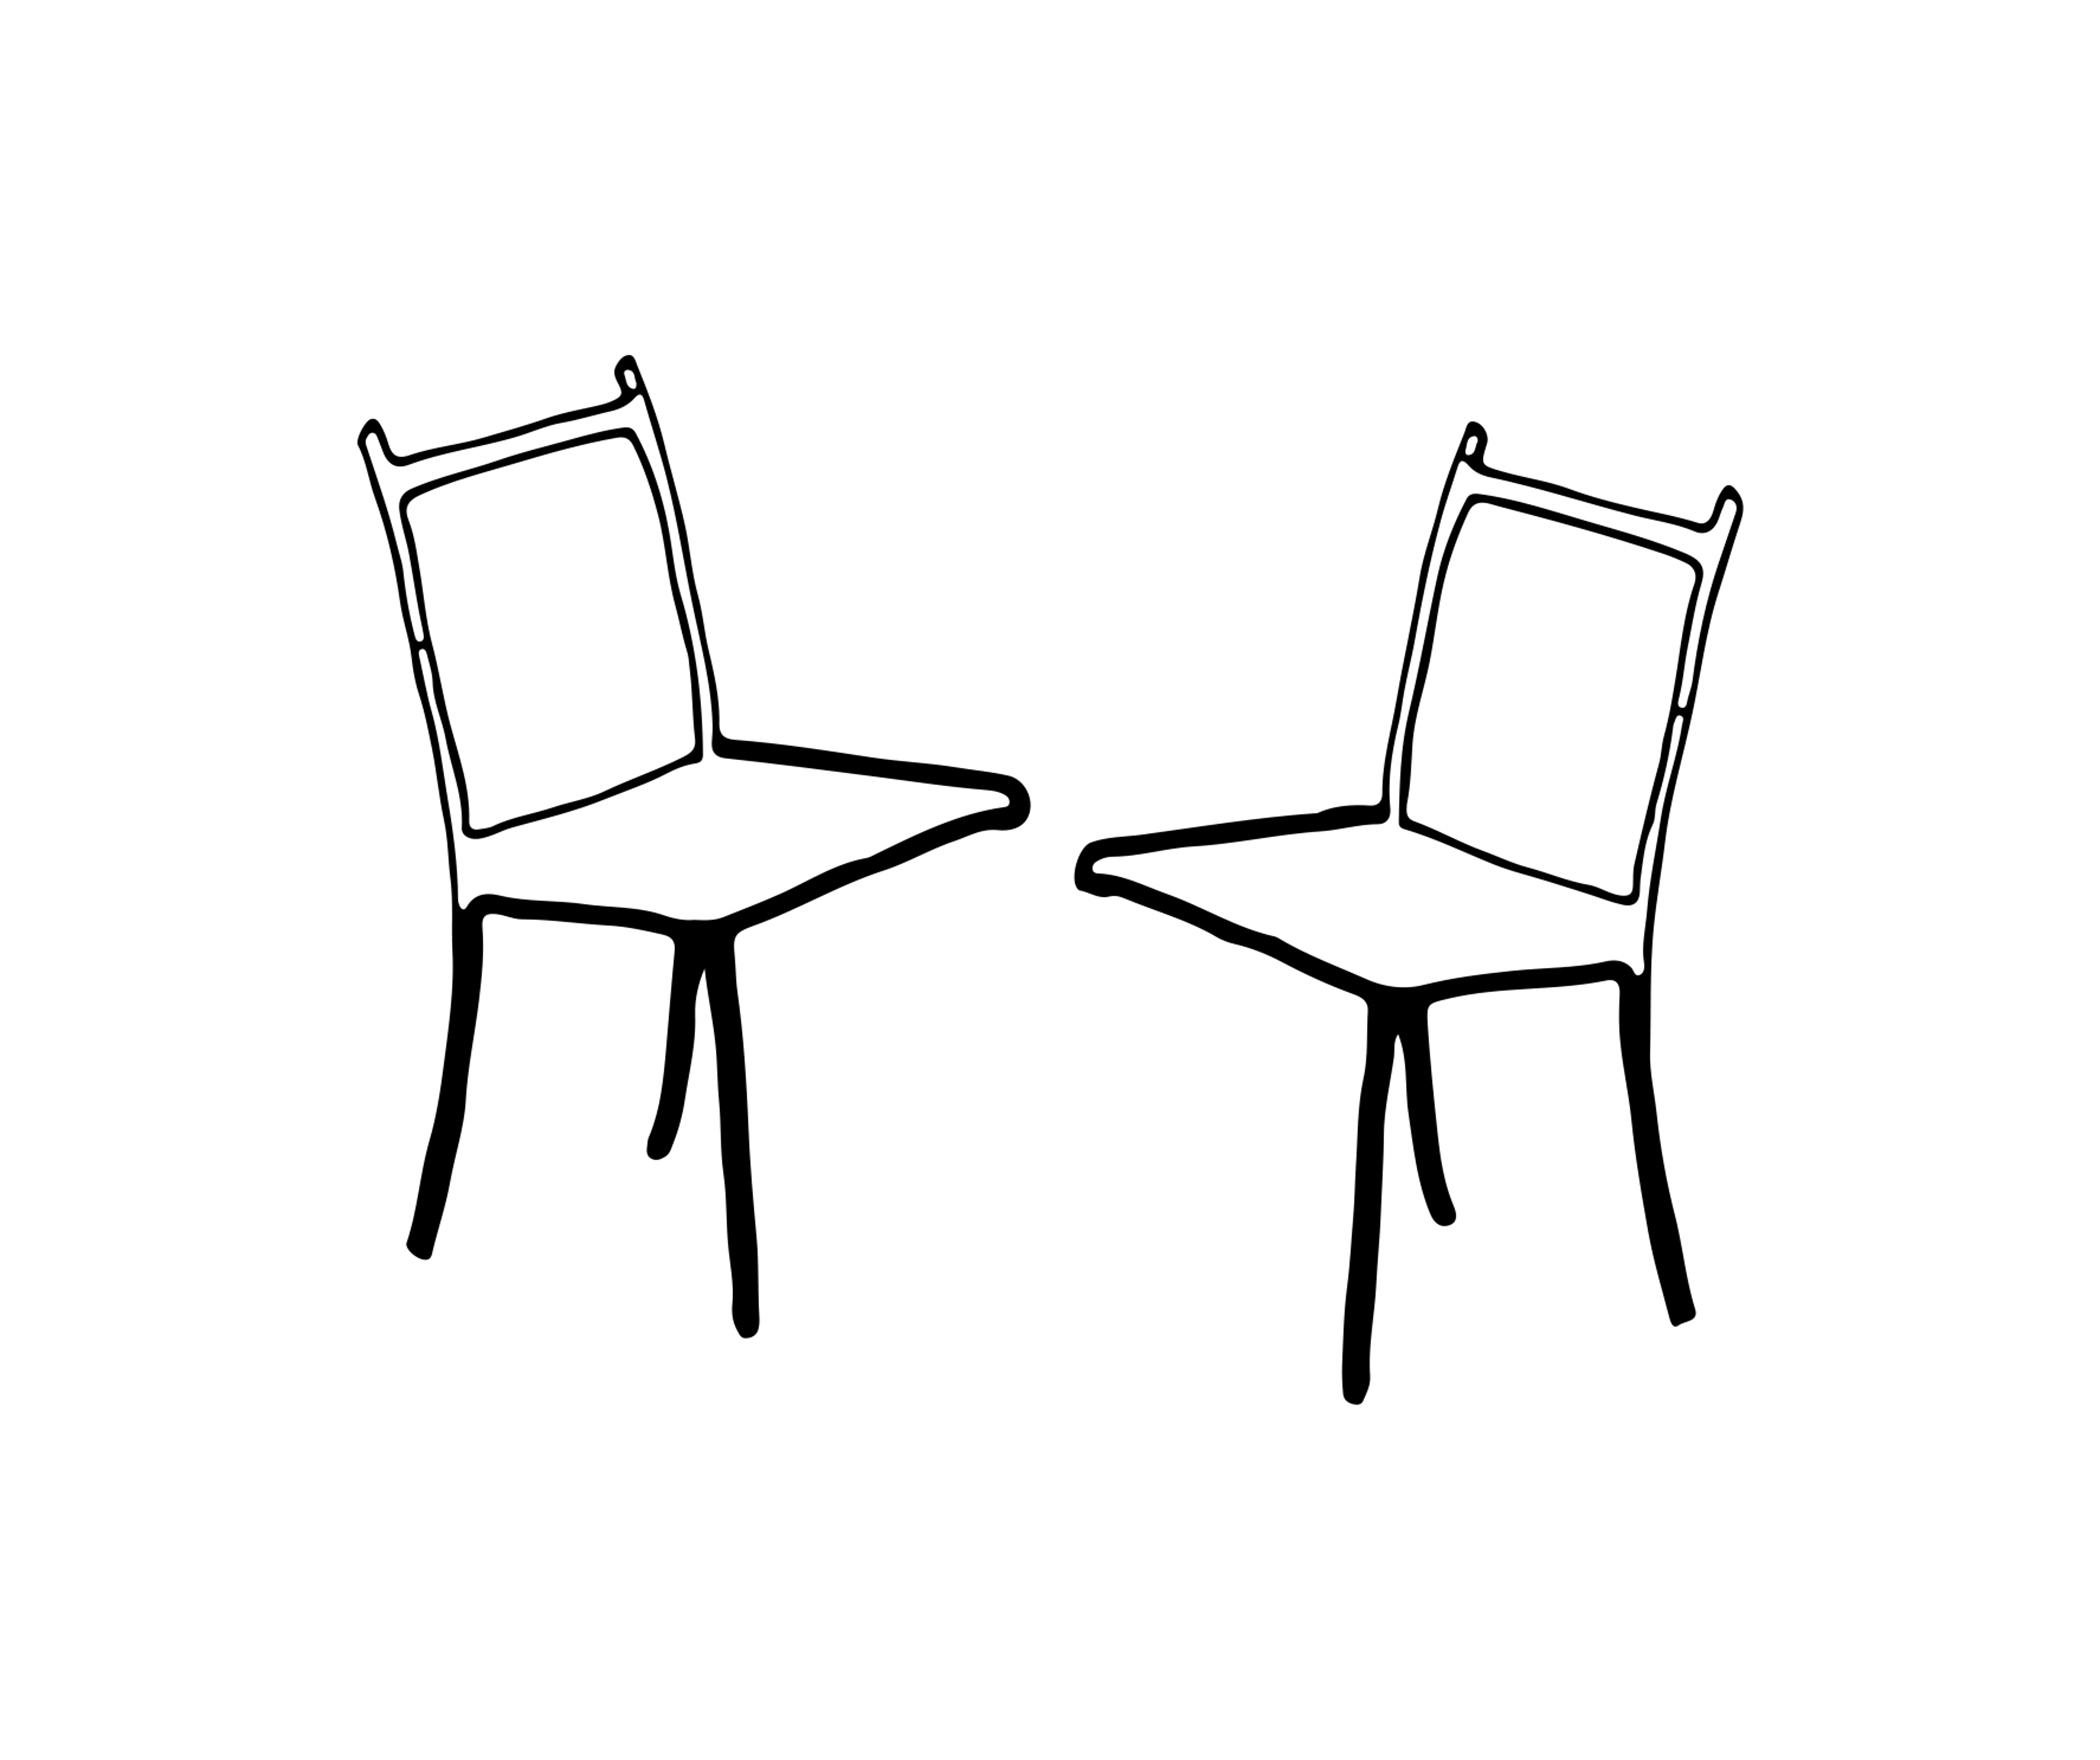 A digital sketch shows two three-legged chairs facing one another.